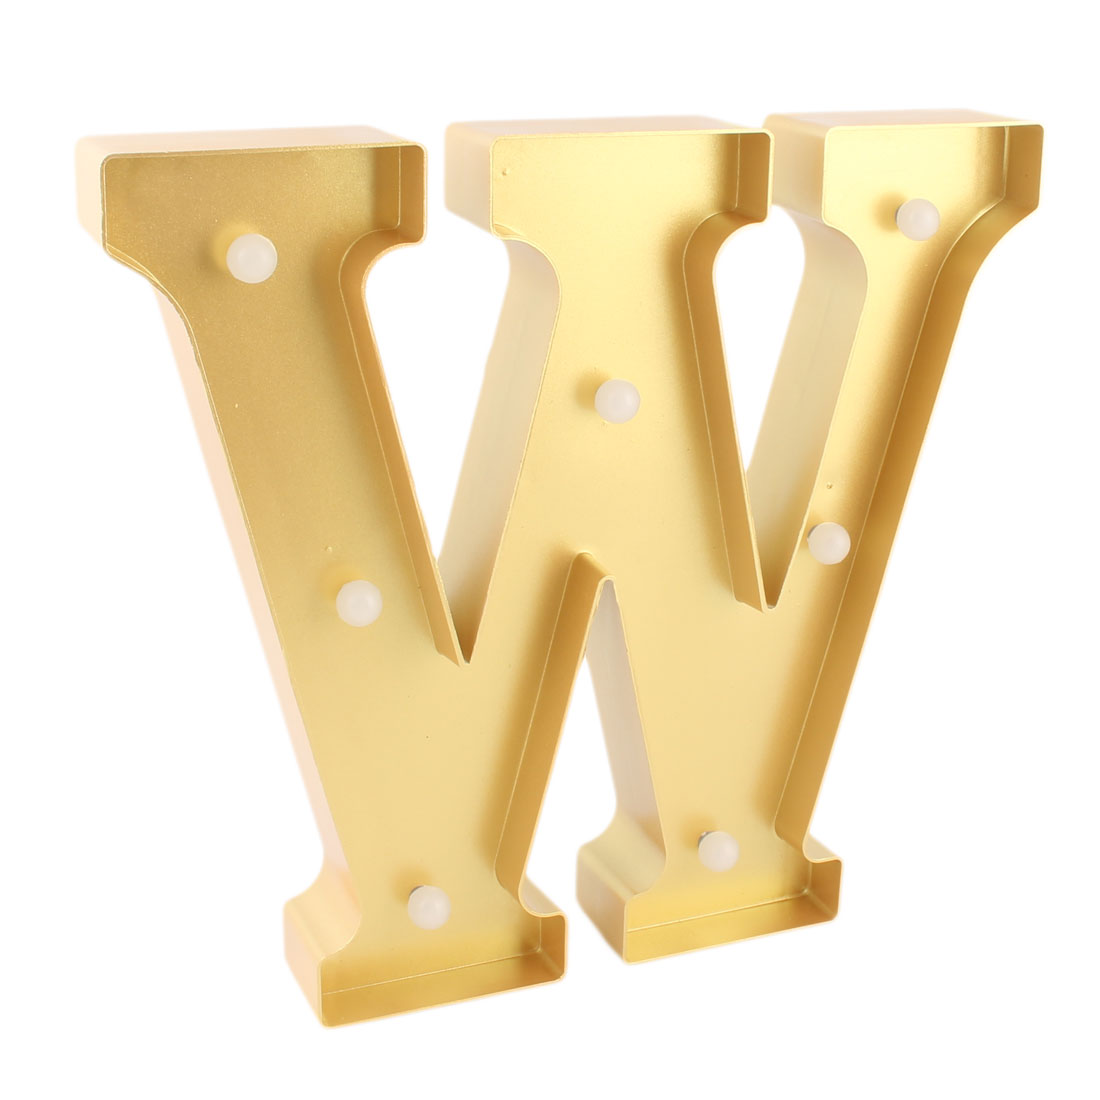 Home Plastic Decor English W Letter Alphabet Word Free DIY Hanging LED Light Gold Tone